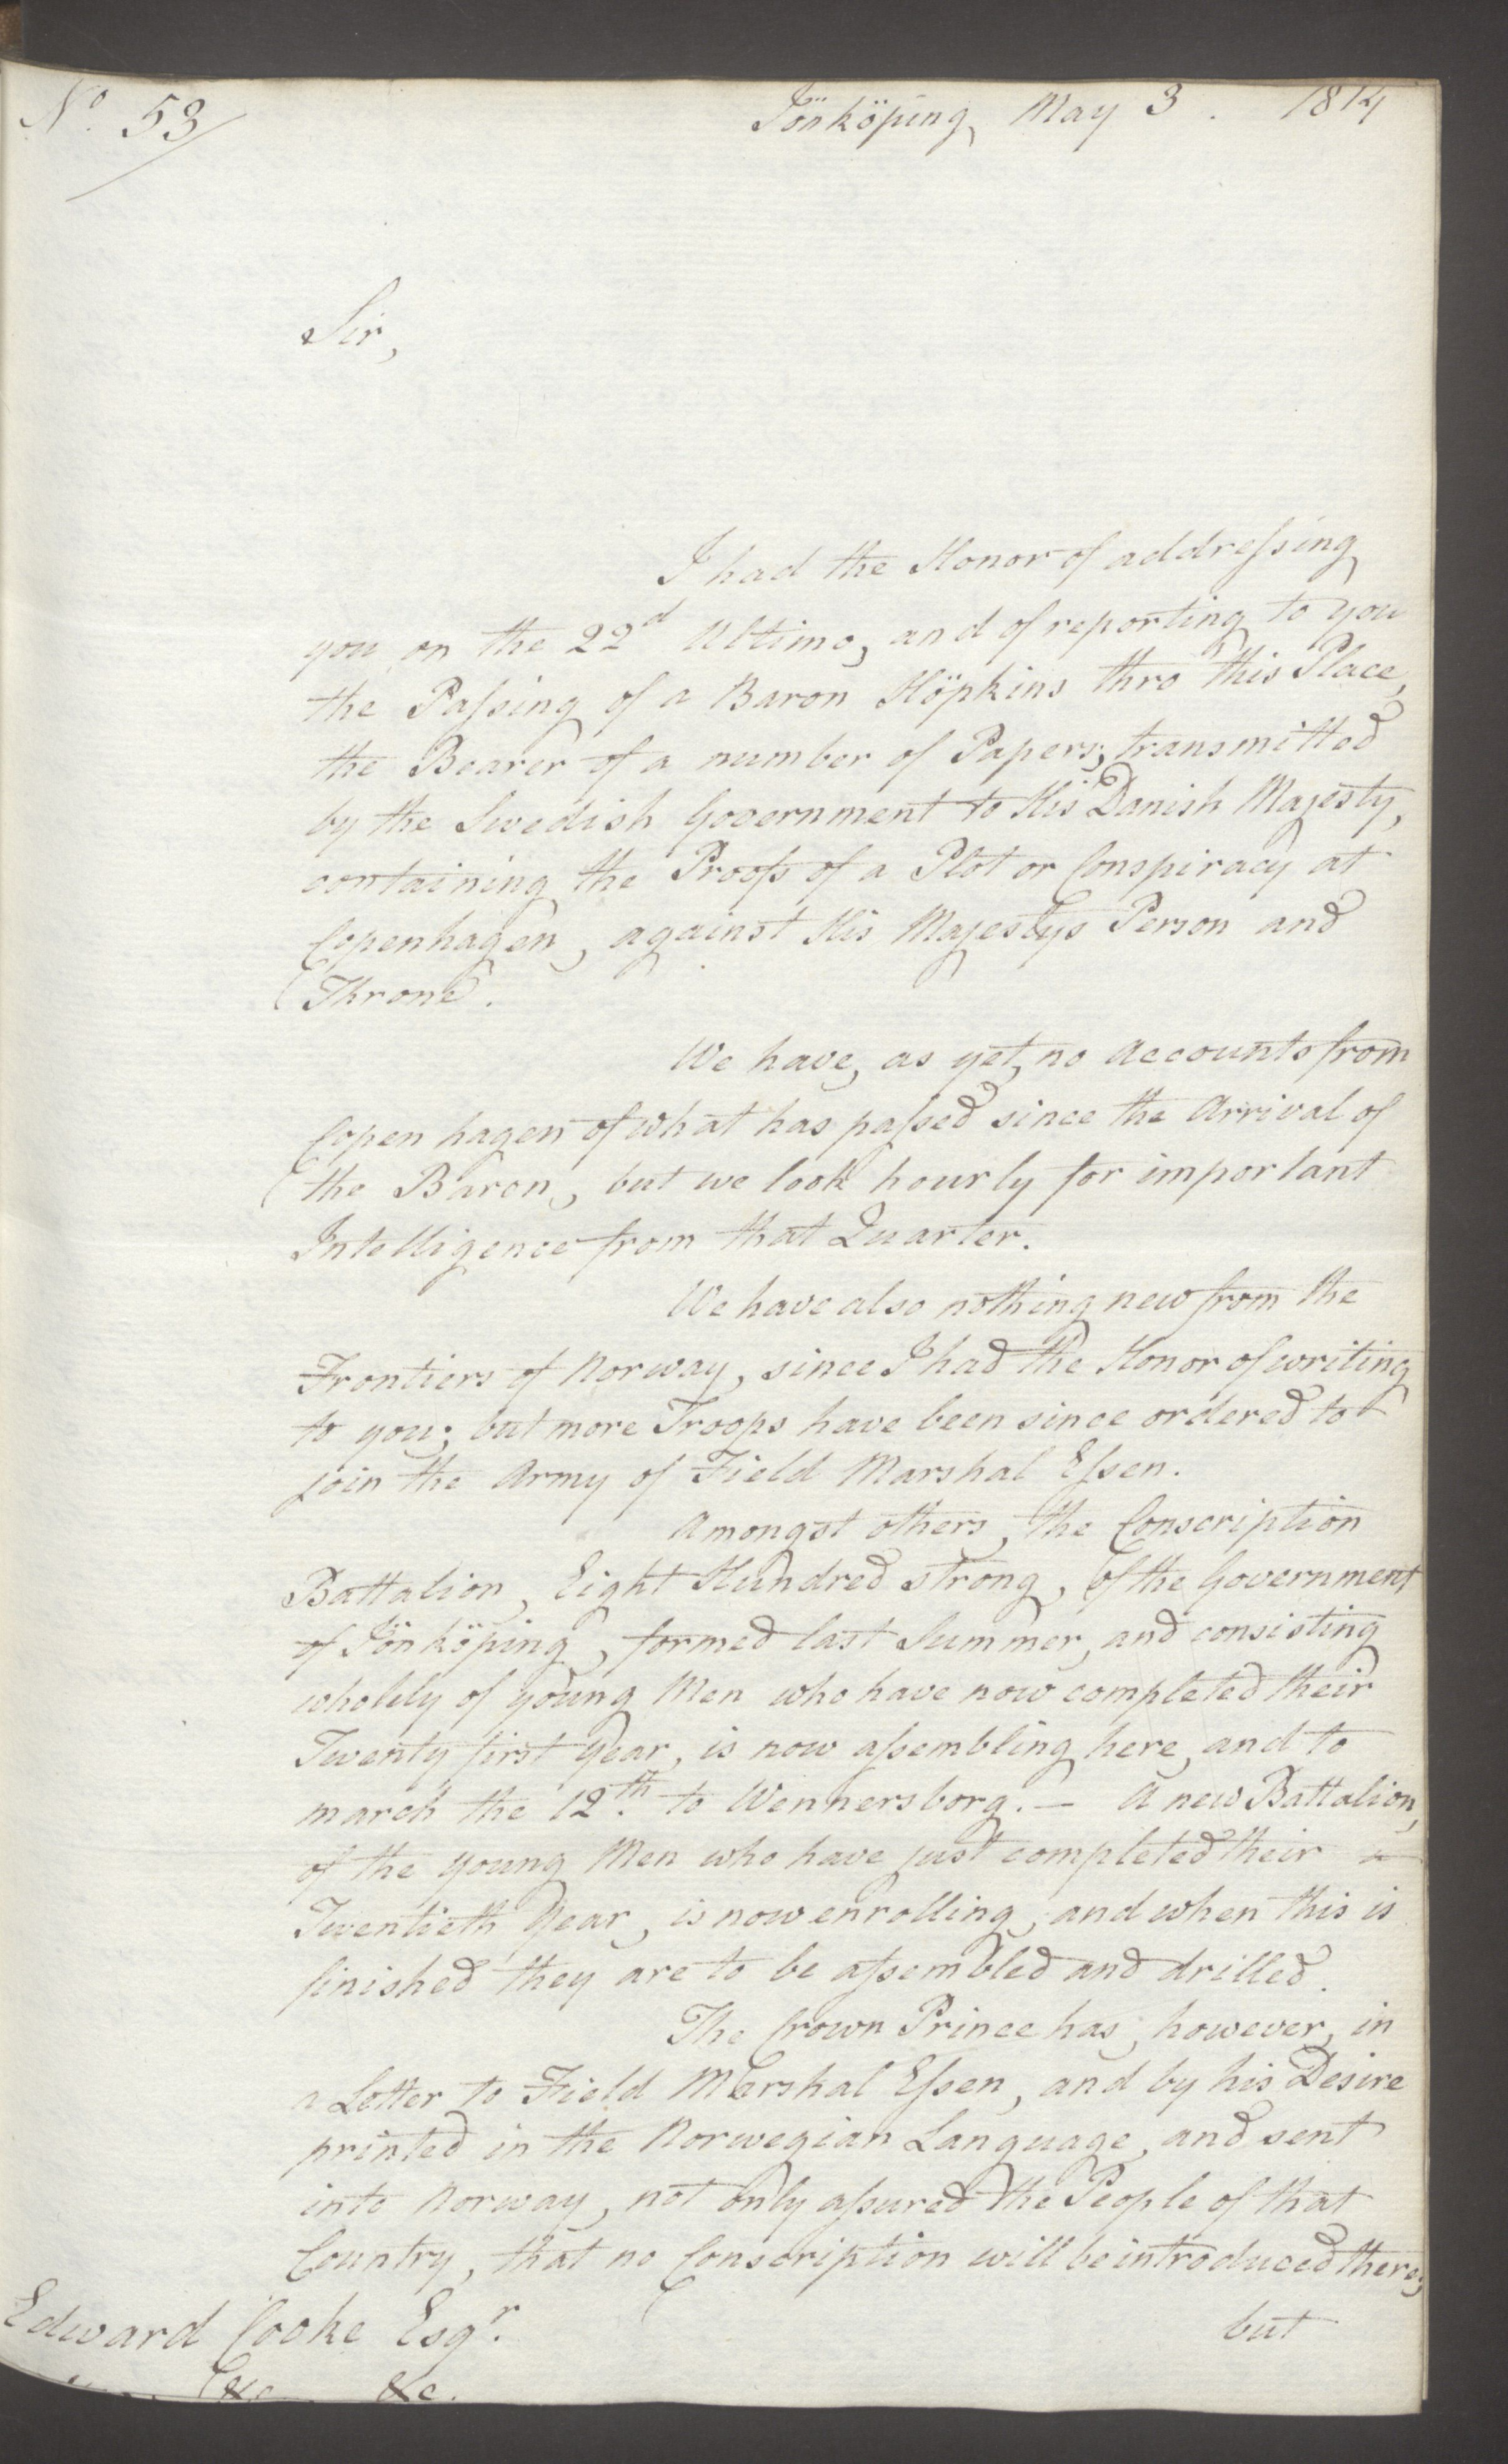 UKA, Foreign Office*, FO 38/16: Sir C. Gordon. Reports from Malmö, Jonkoping, and Helsingborg, 1814, s. 38